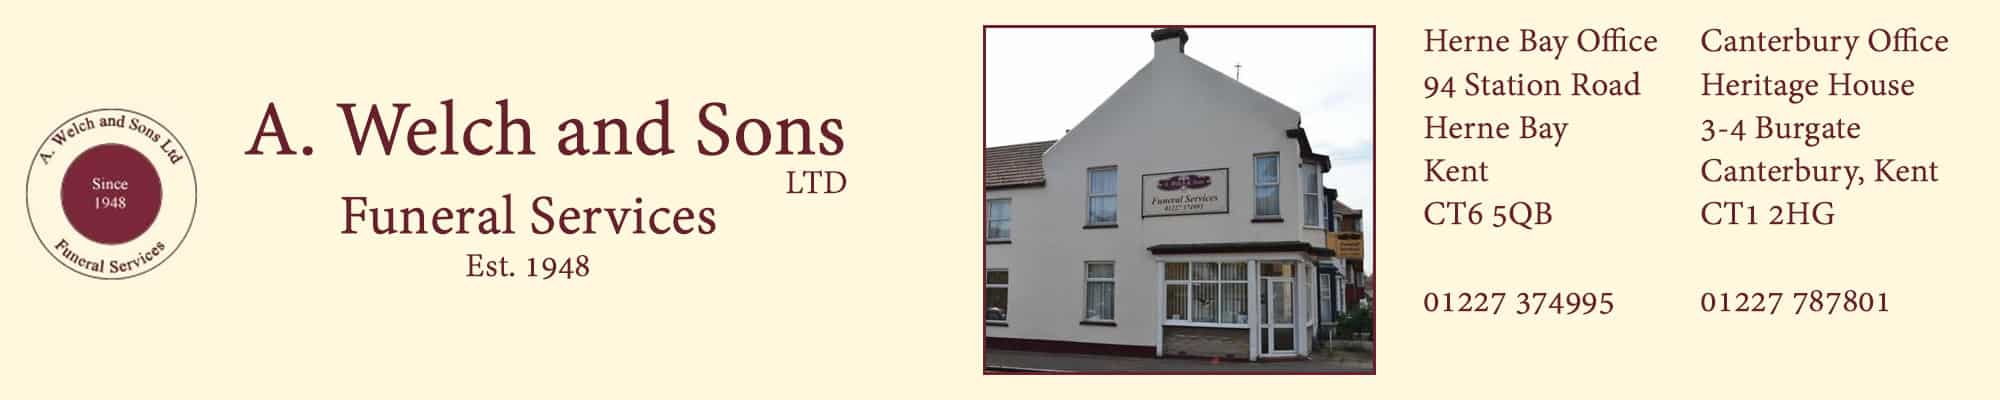 A Welch and Sons Funeral Services